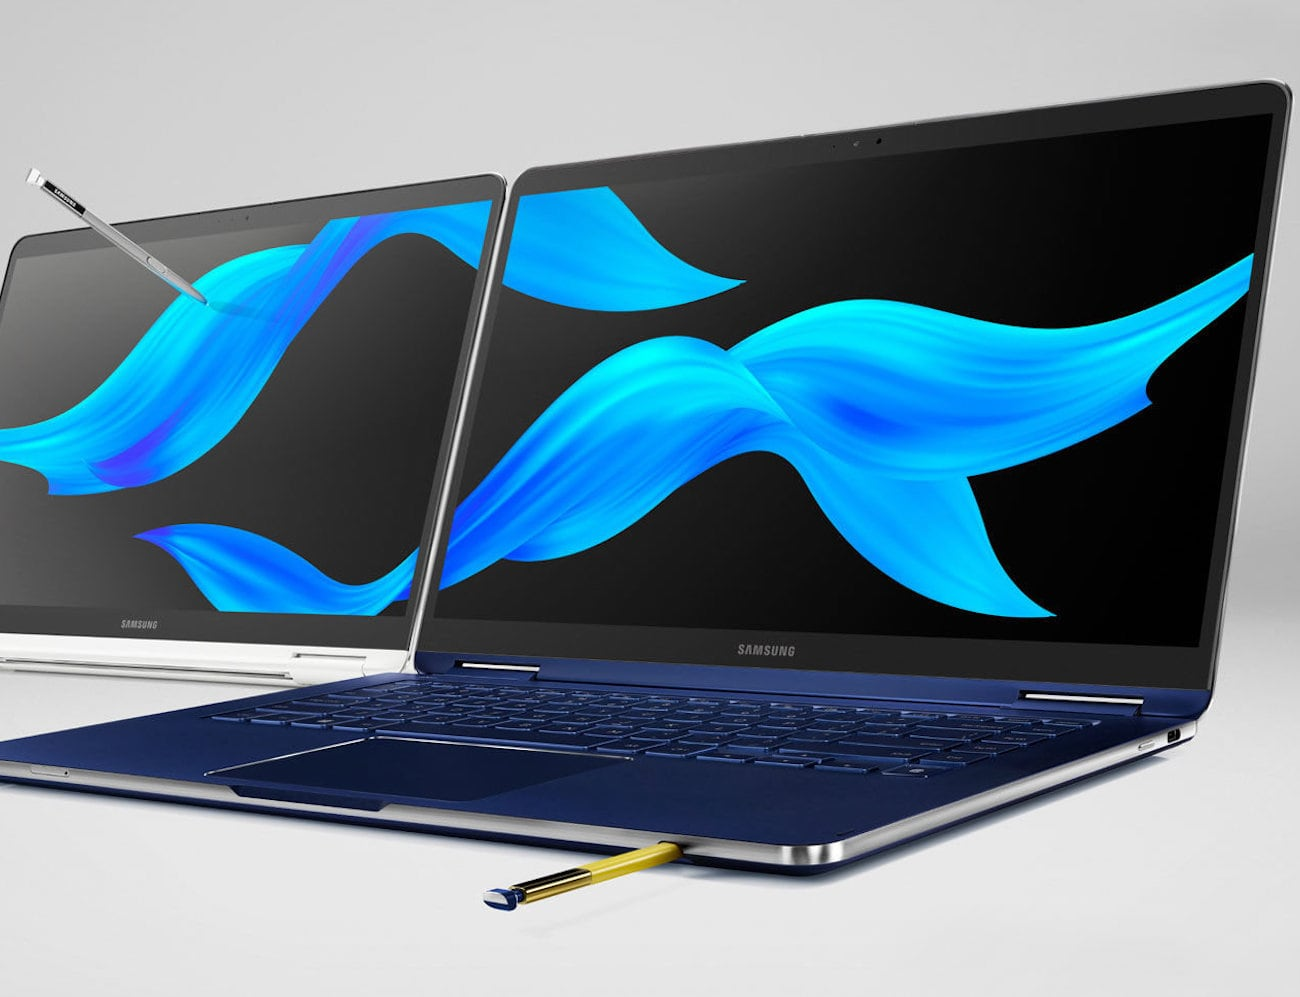 Samsung Notebook 9 Pen 13.3 Windows Laptop keeps up with your life on the go